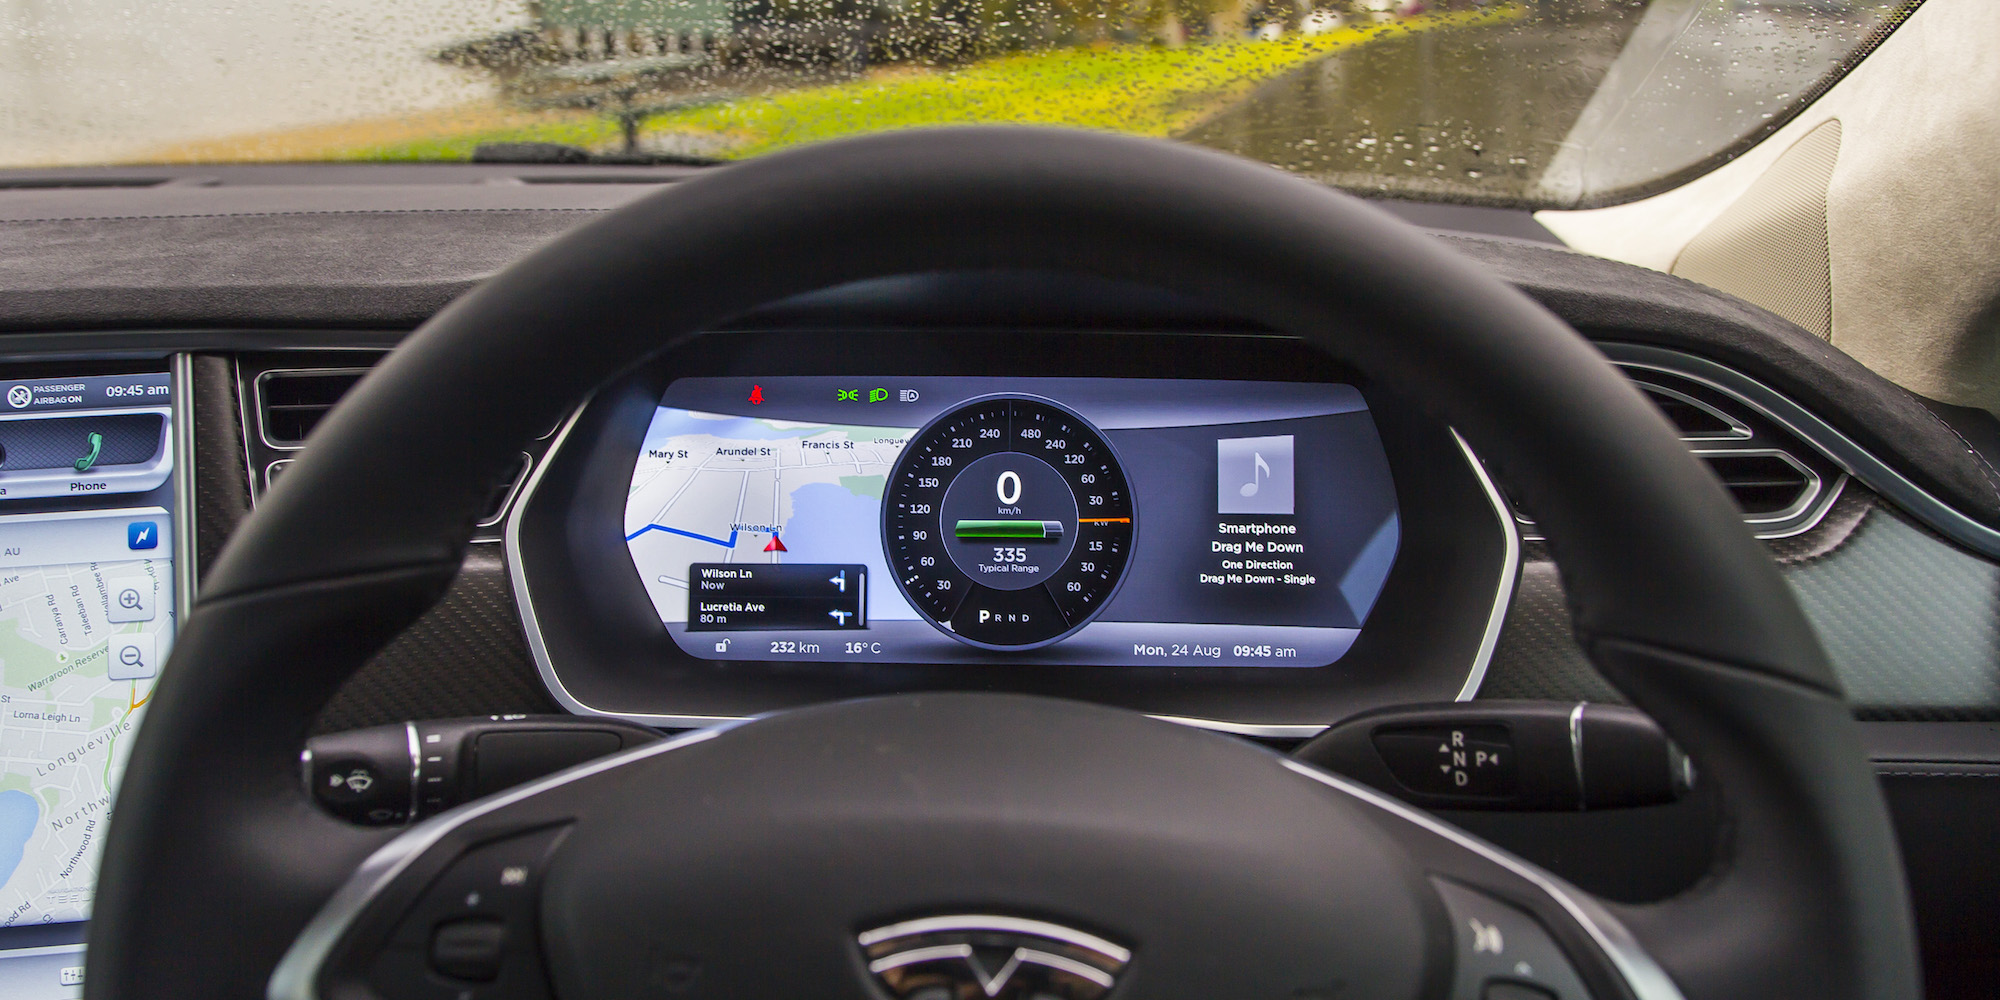 2015 Tesla Model S P85d Speedometer View (Photo 37 of 37)